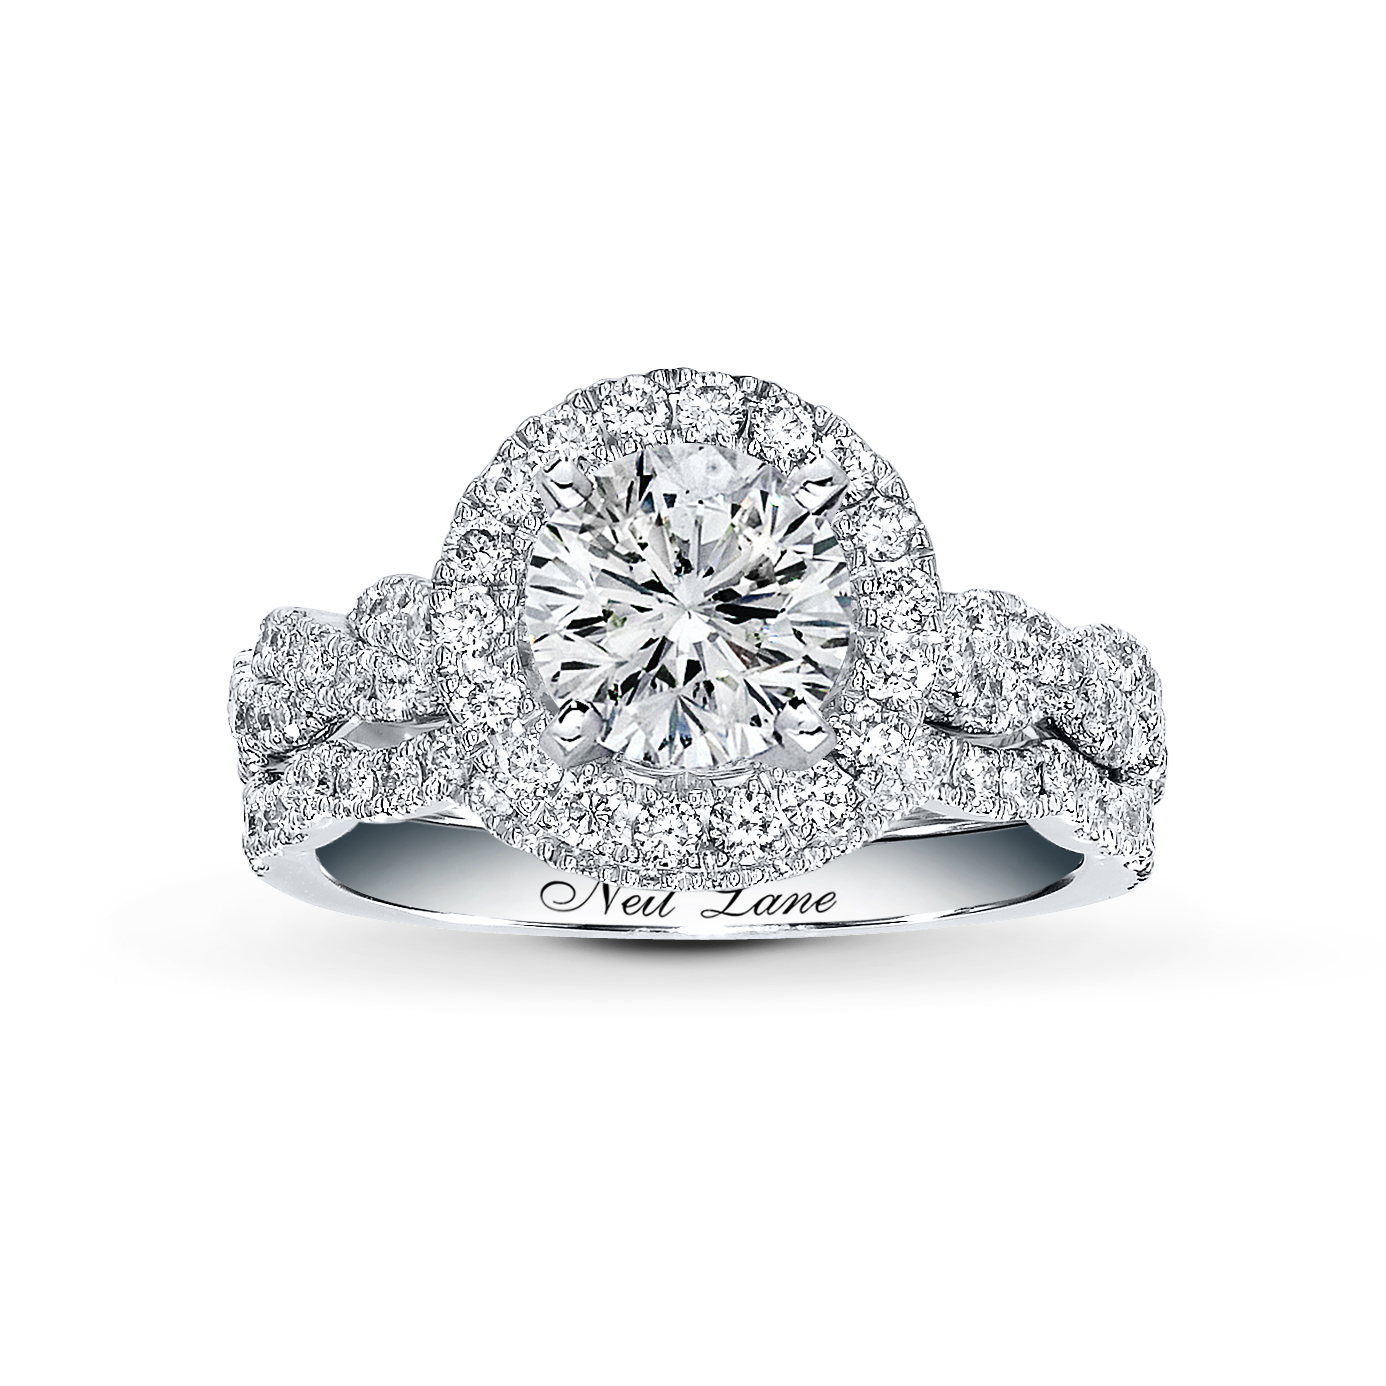 Super Beautiful Halo Diamond Engagement Ring with Jared